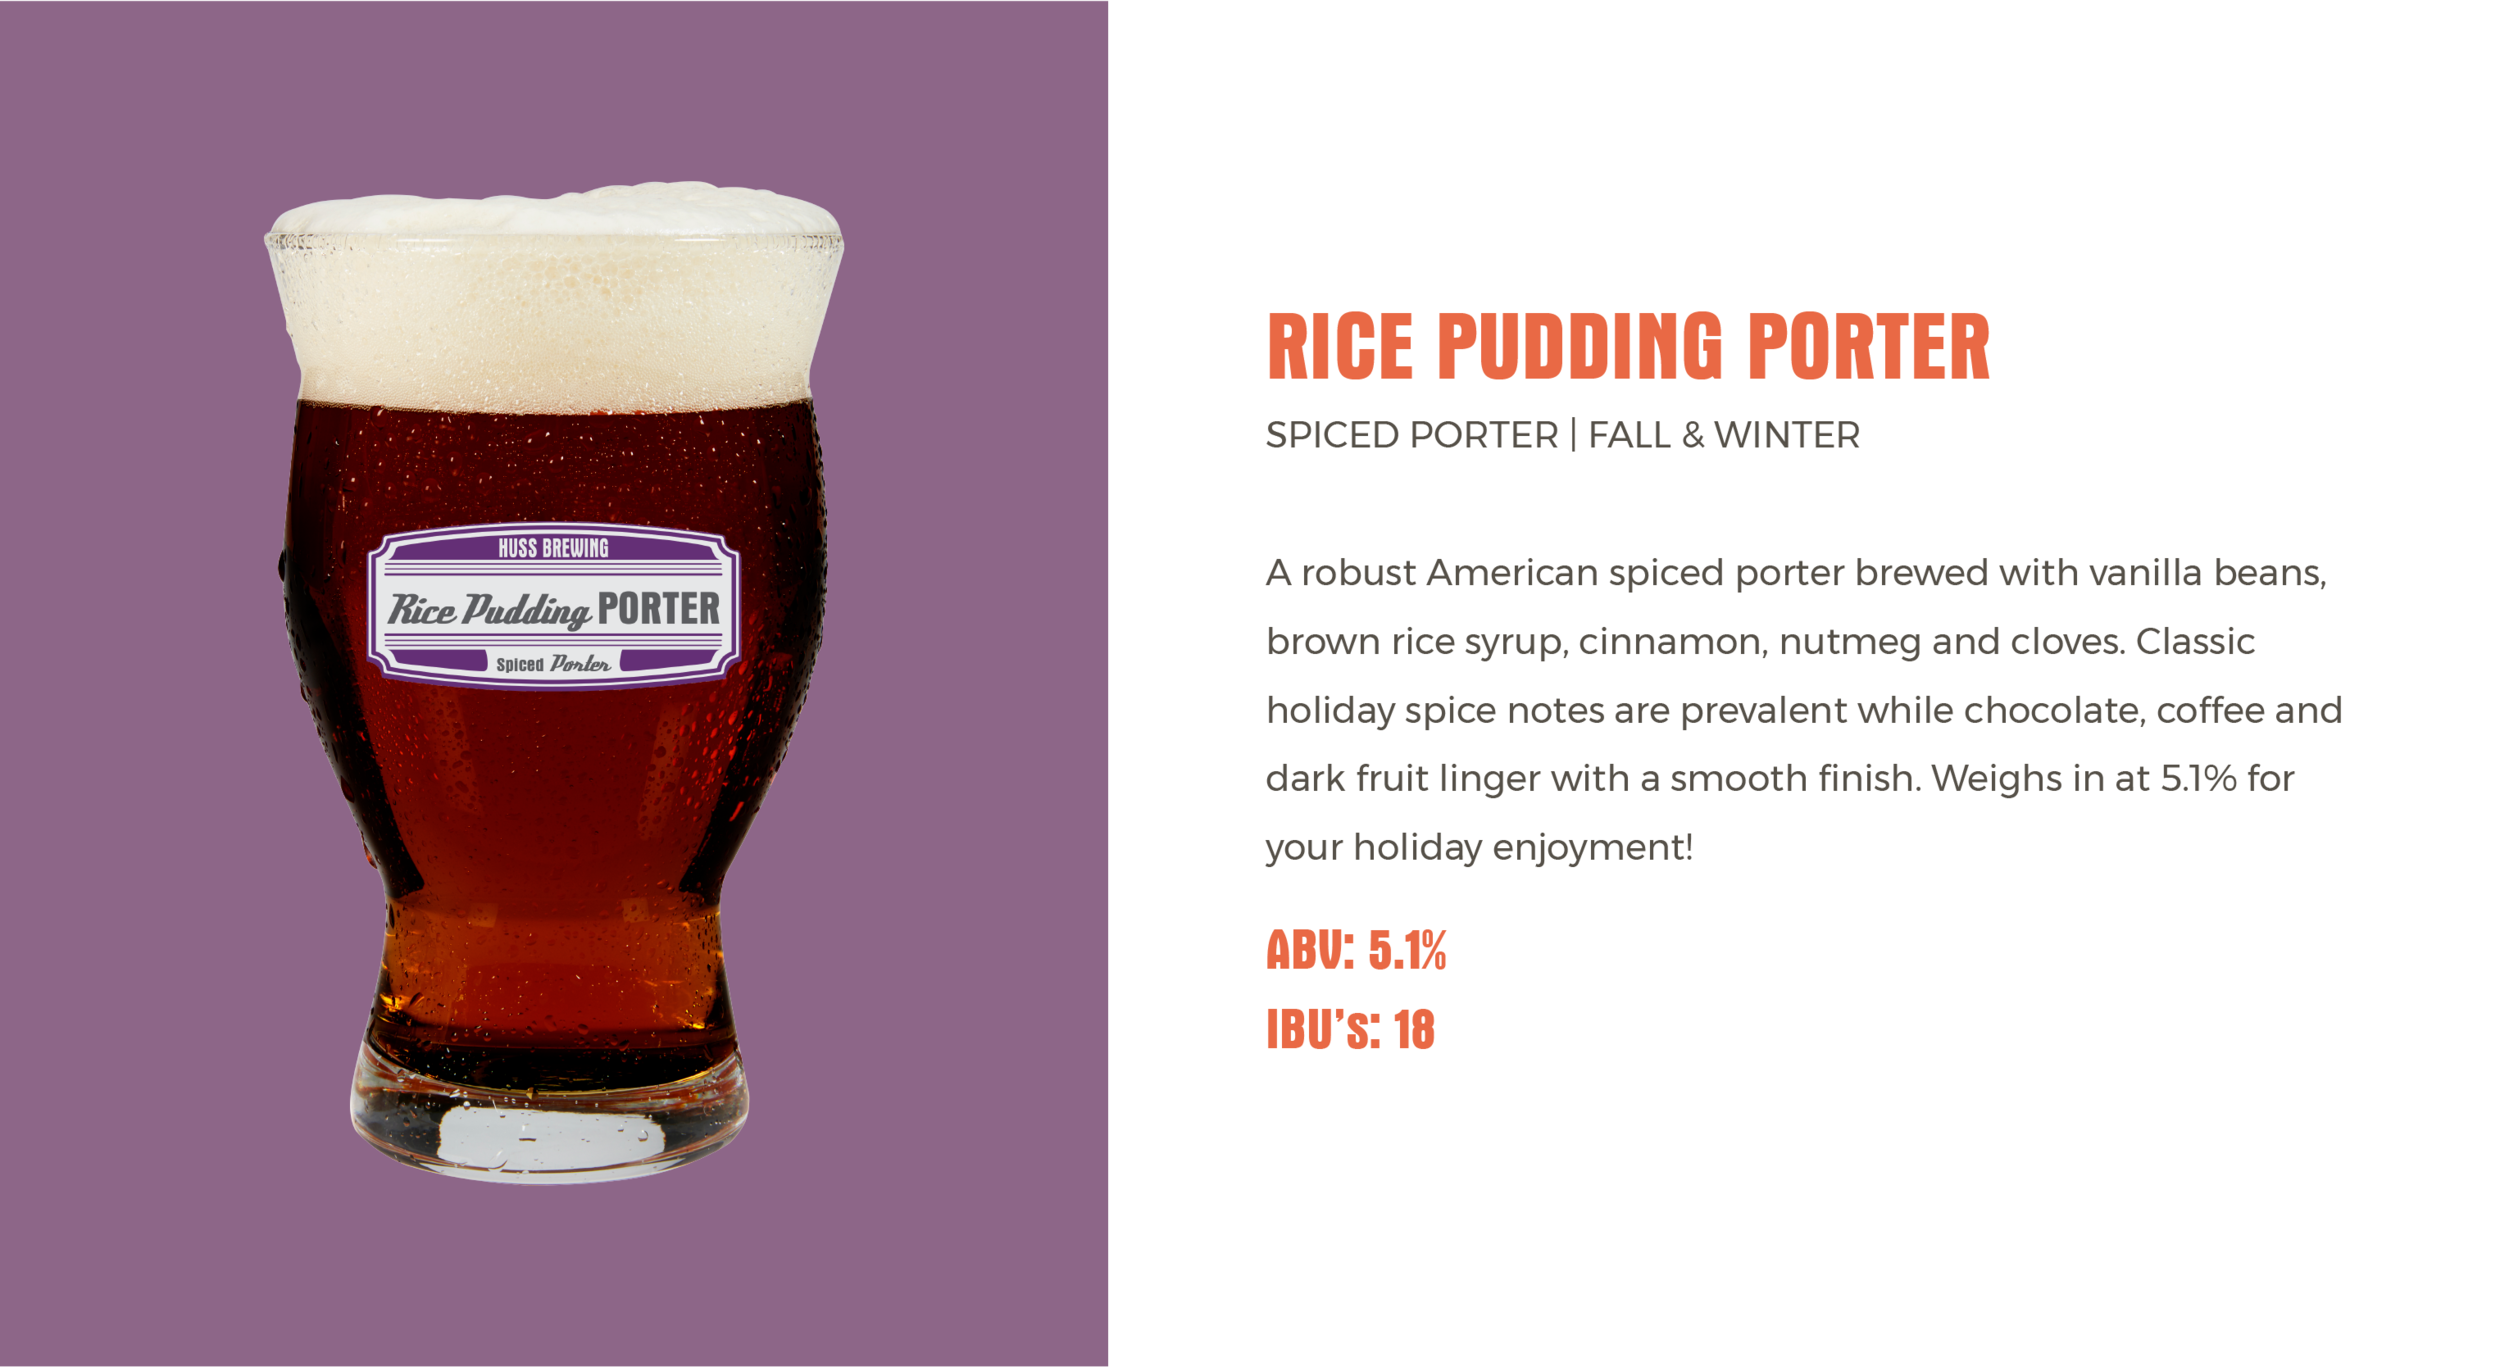 Huss Brewing Co Rice Pudding Porter